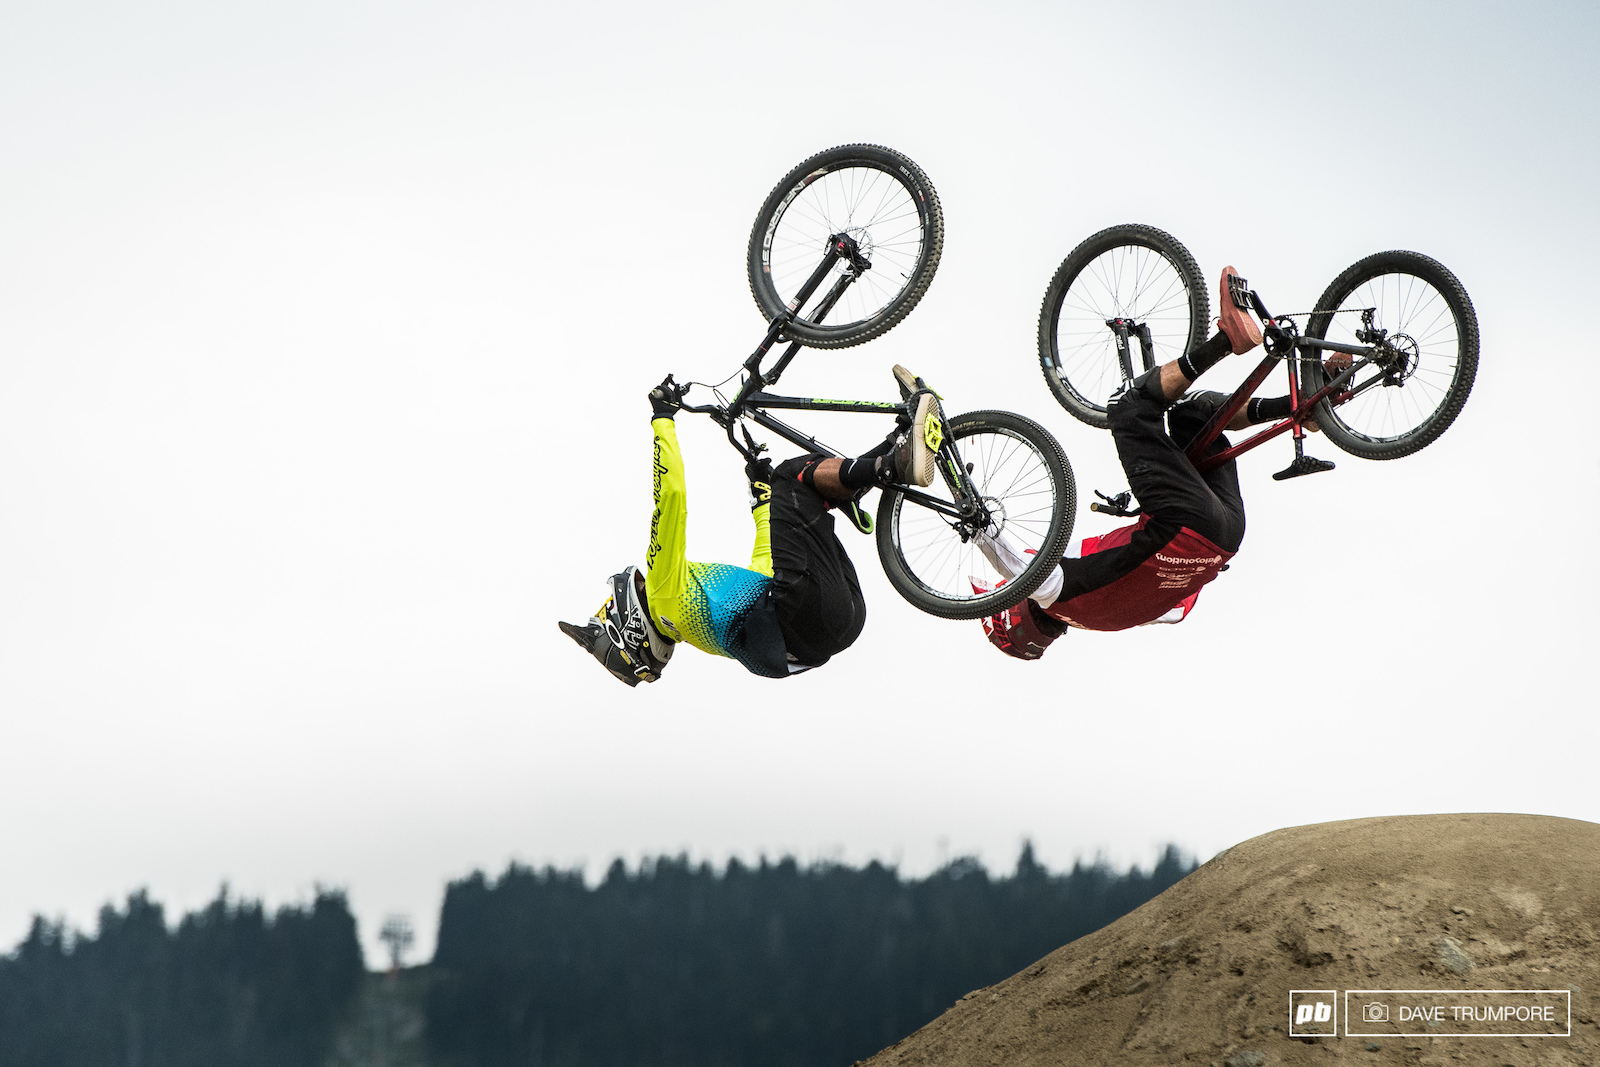 Synchronized flipping from Austin Warren and Adrien Loron.